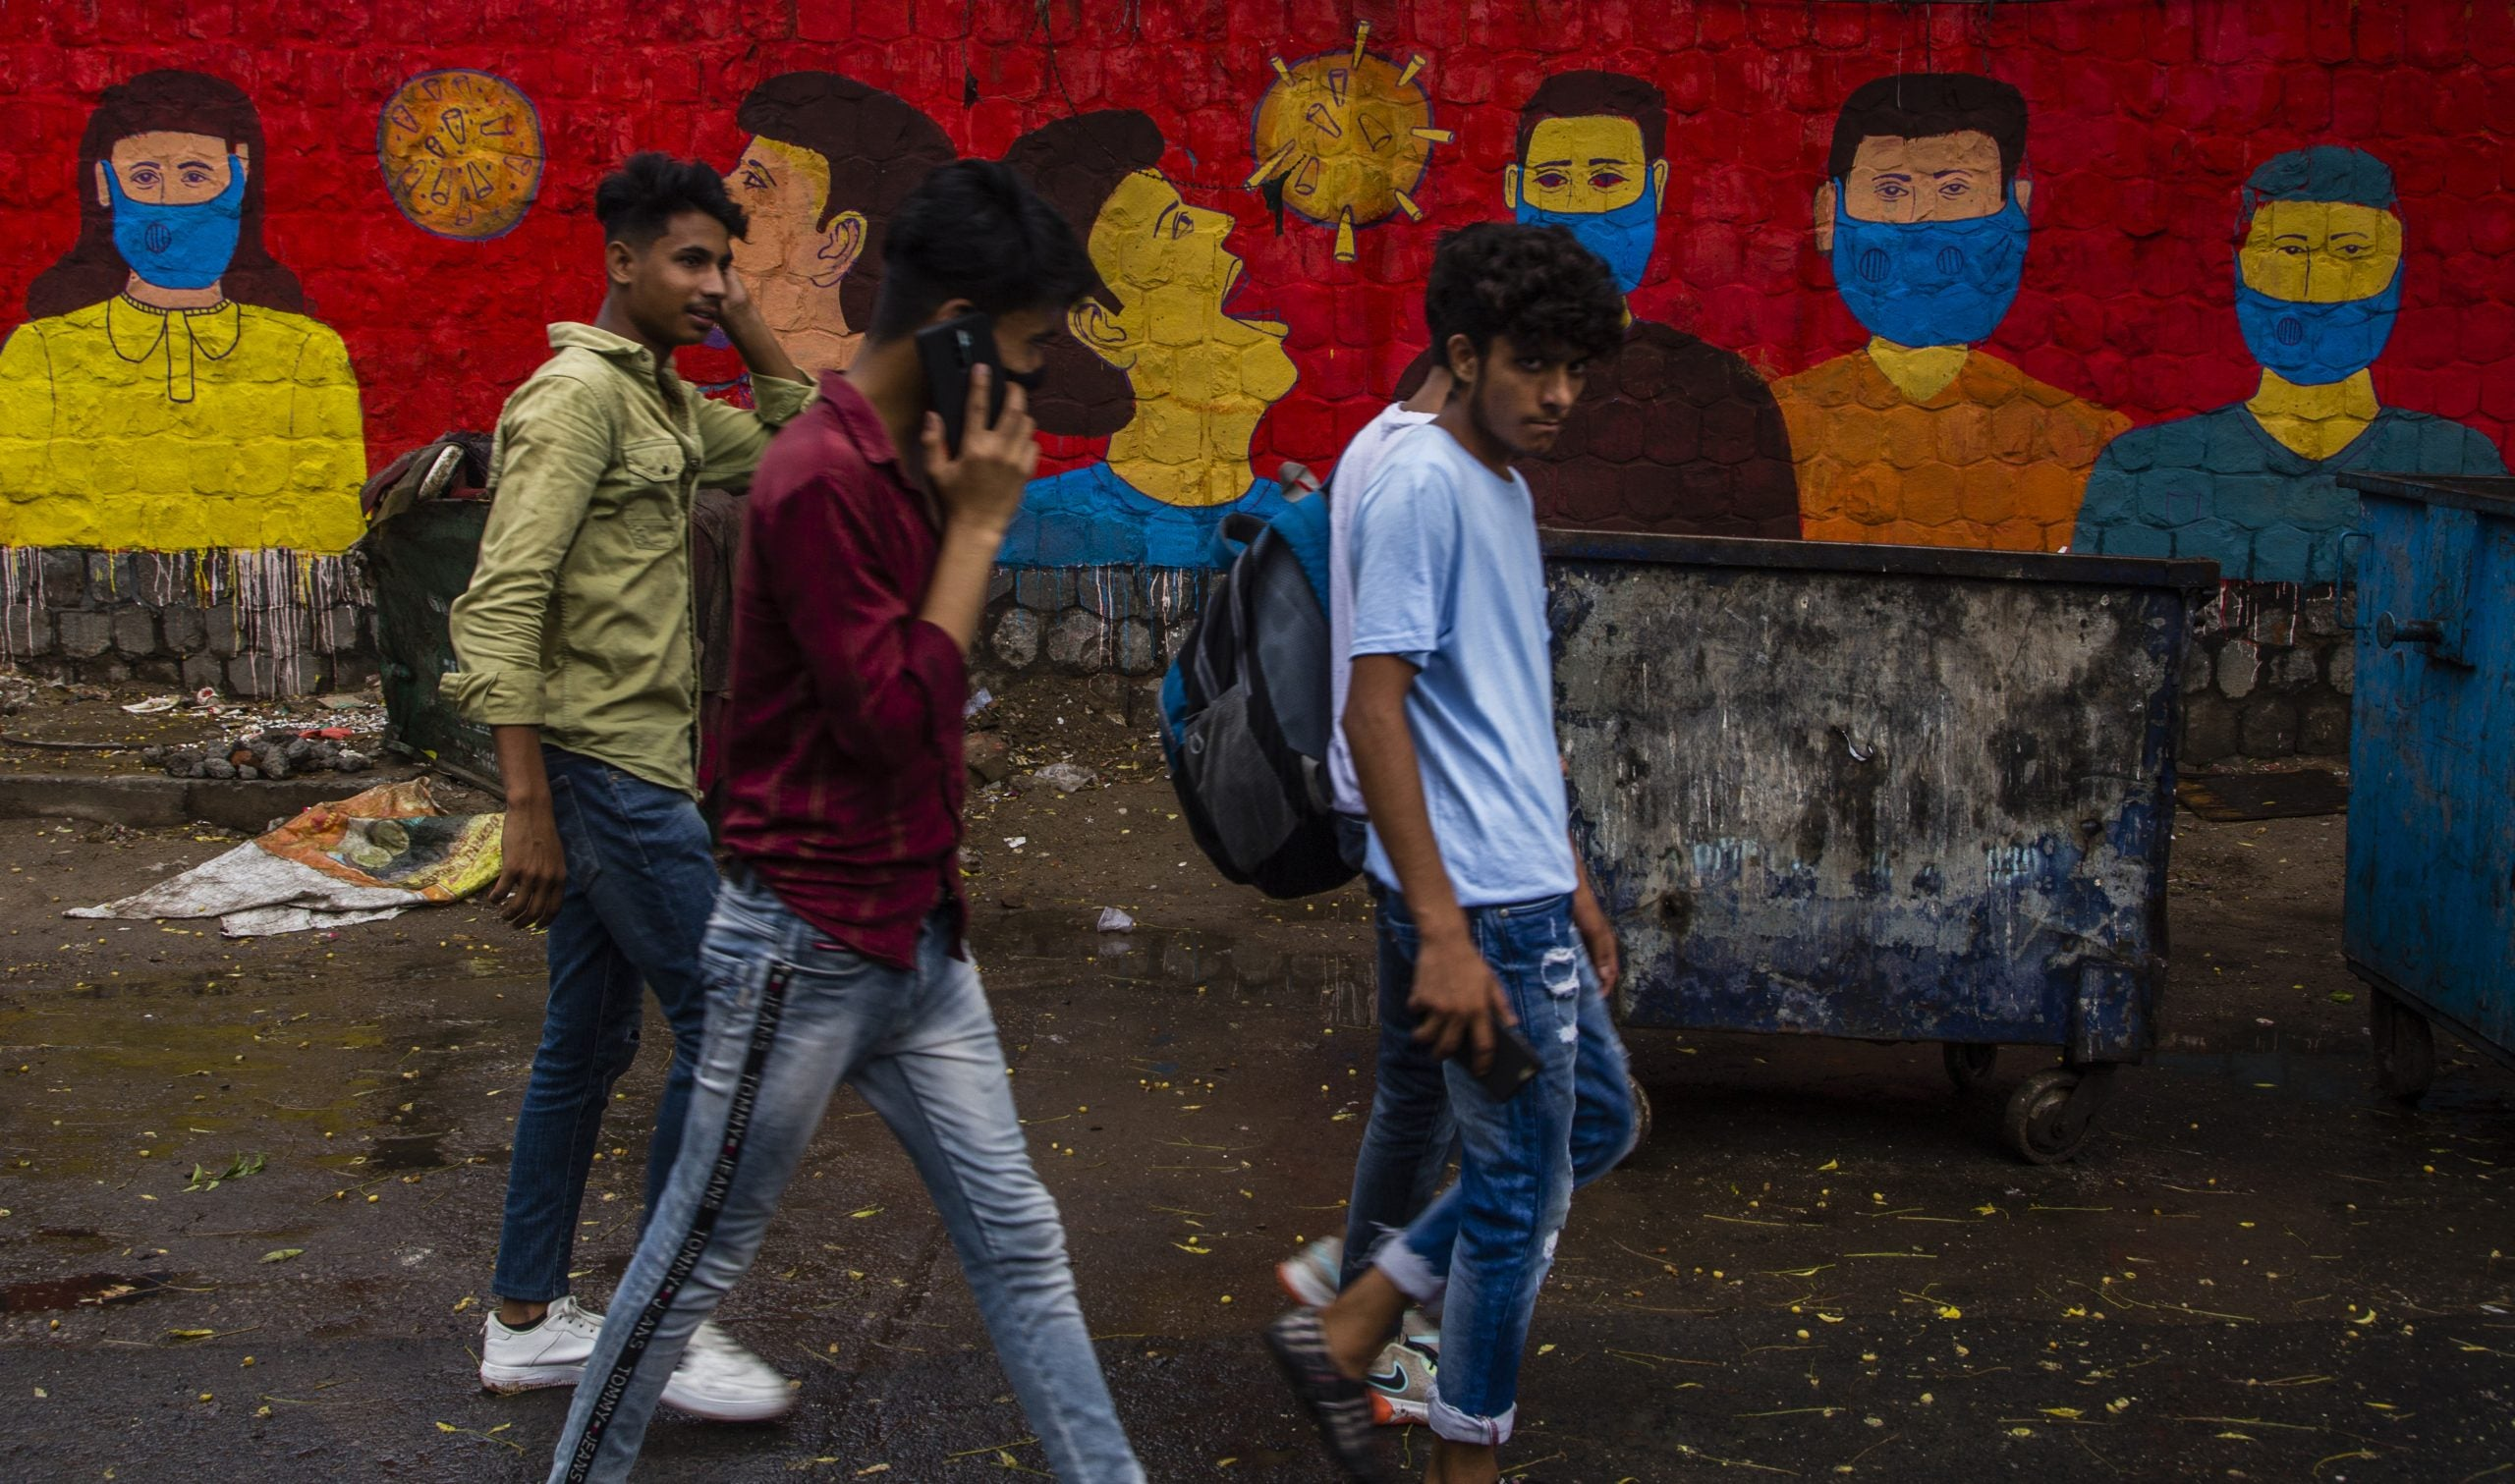 India's millennials have been hit hard by the Covid recession